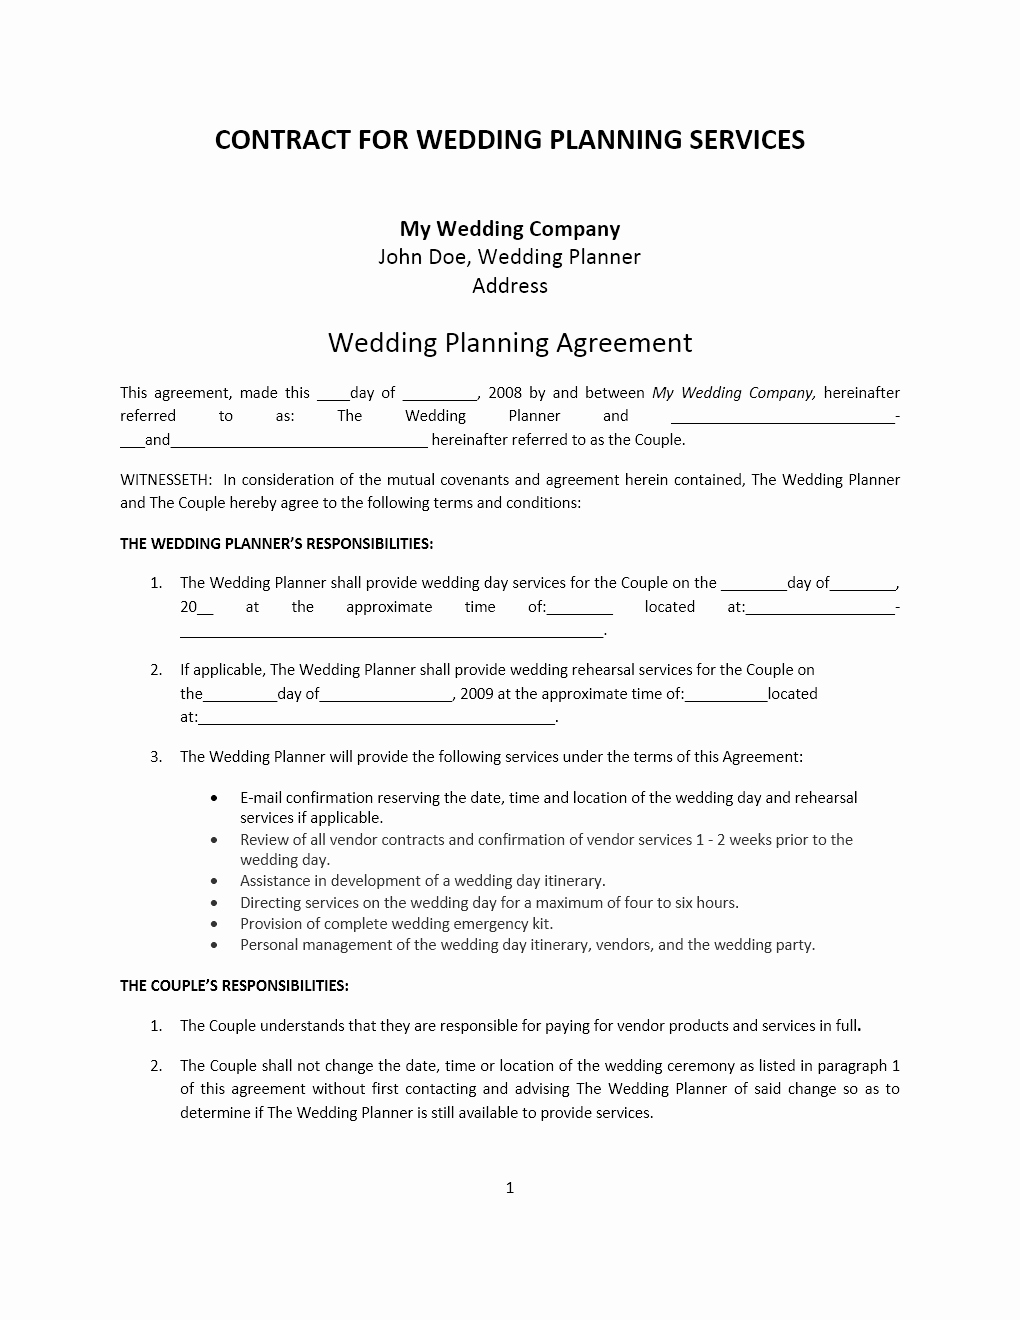 Wedding Planners Contract Template Luxury Wedding Planner Contract Template